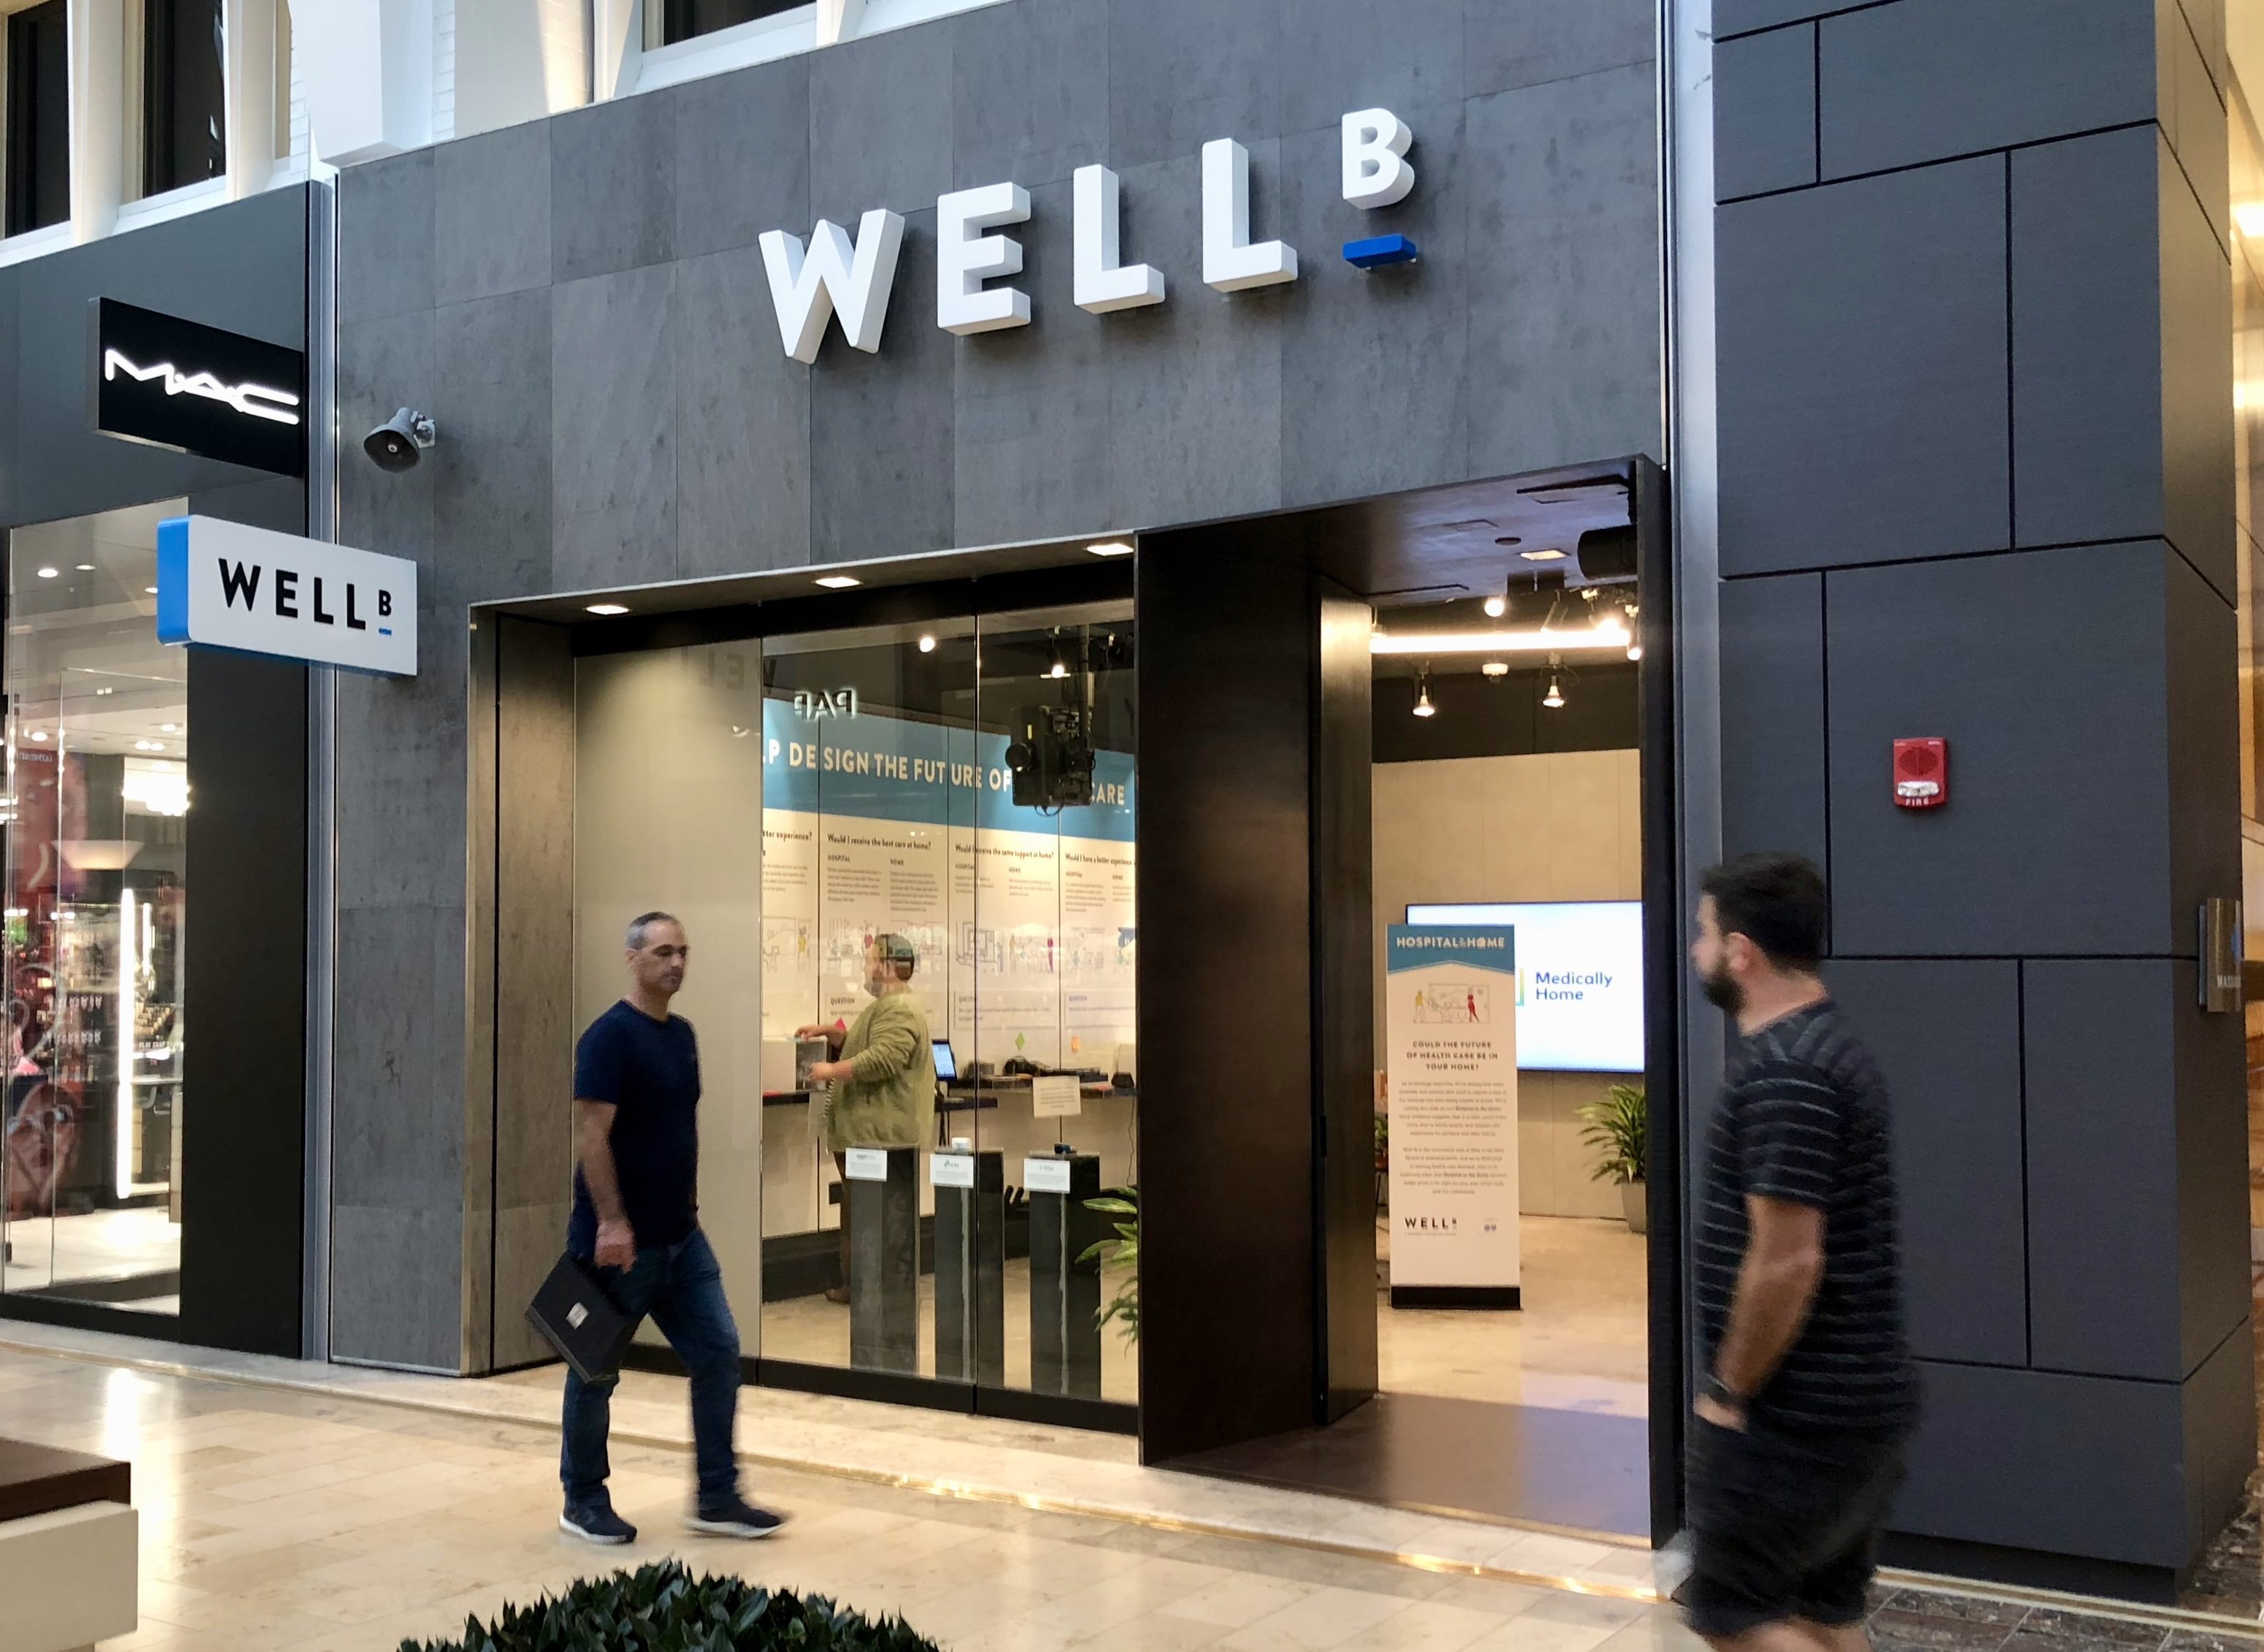 exterior view of Well_B retail/innovation space with people walking by